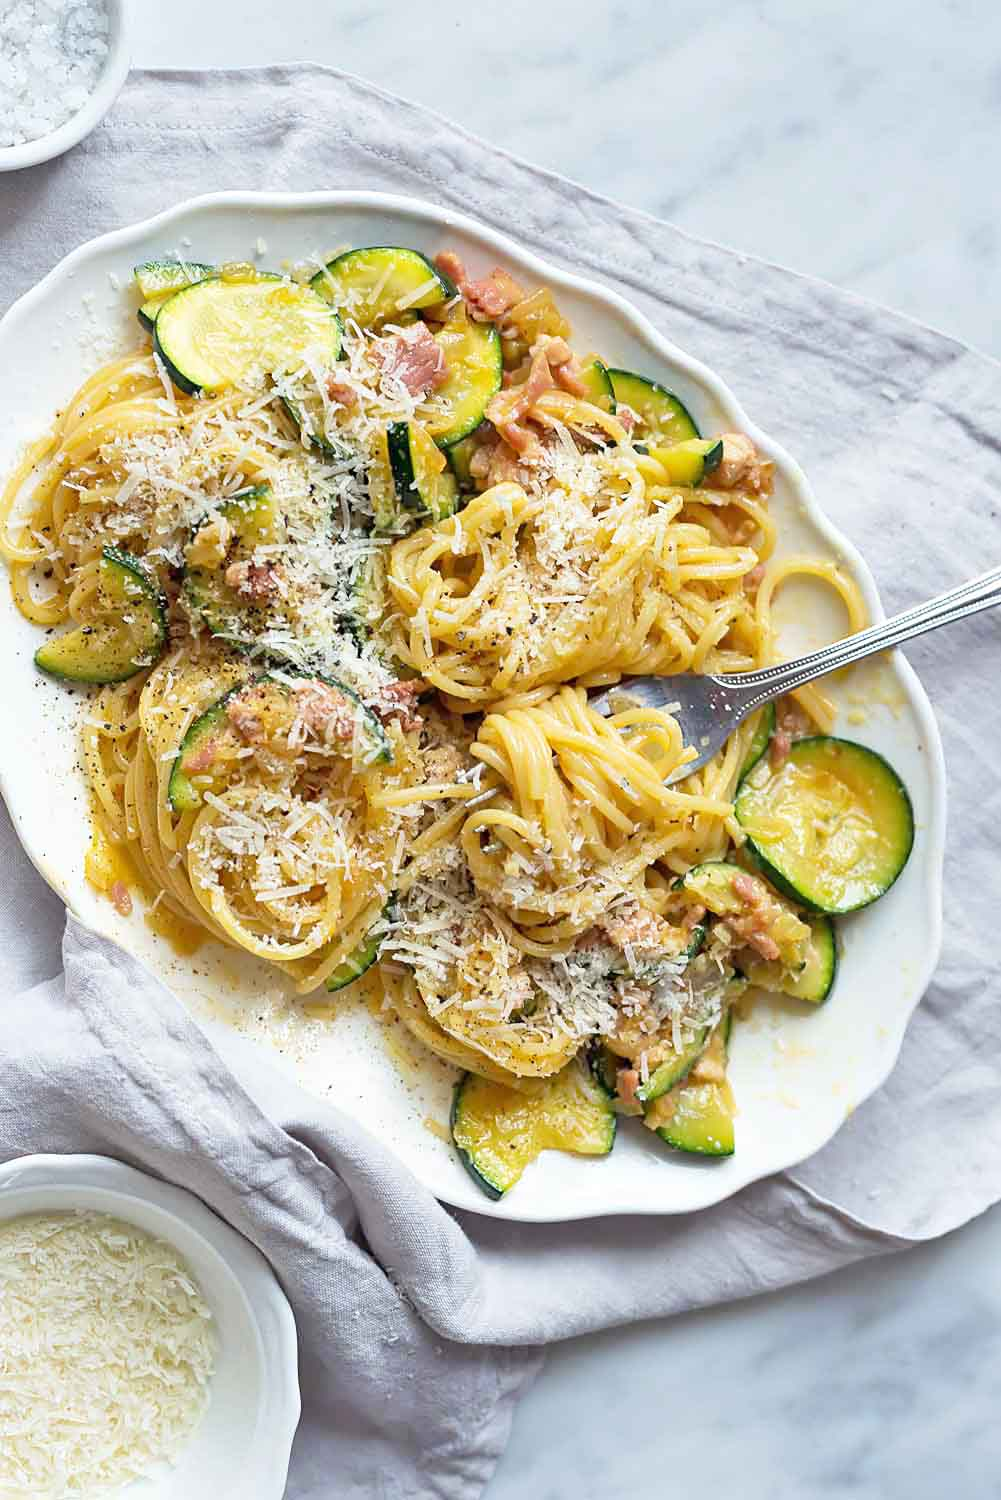 Spaghetti alla Carbonara with free range eggs, Pecorino cheese, pecone (or guanciale), extra virgin olive oil and courgettes (zucchini) - A classic pasta dish with a twist